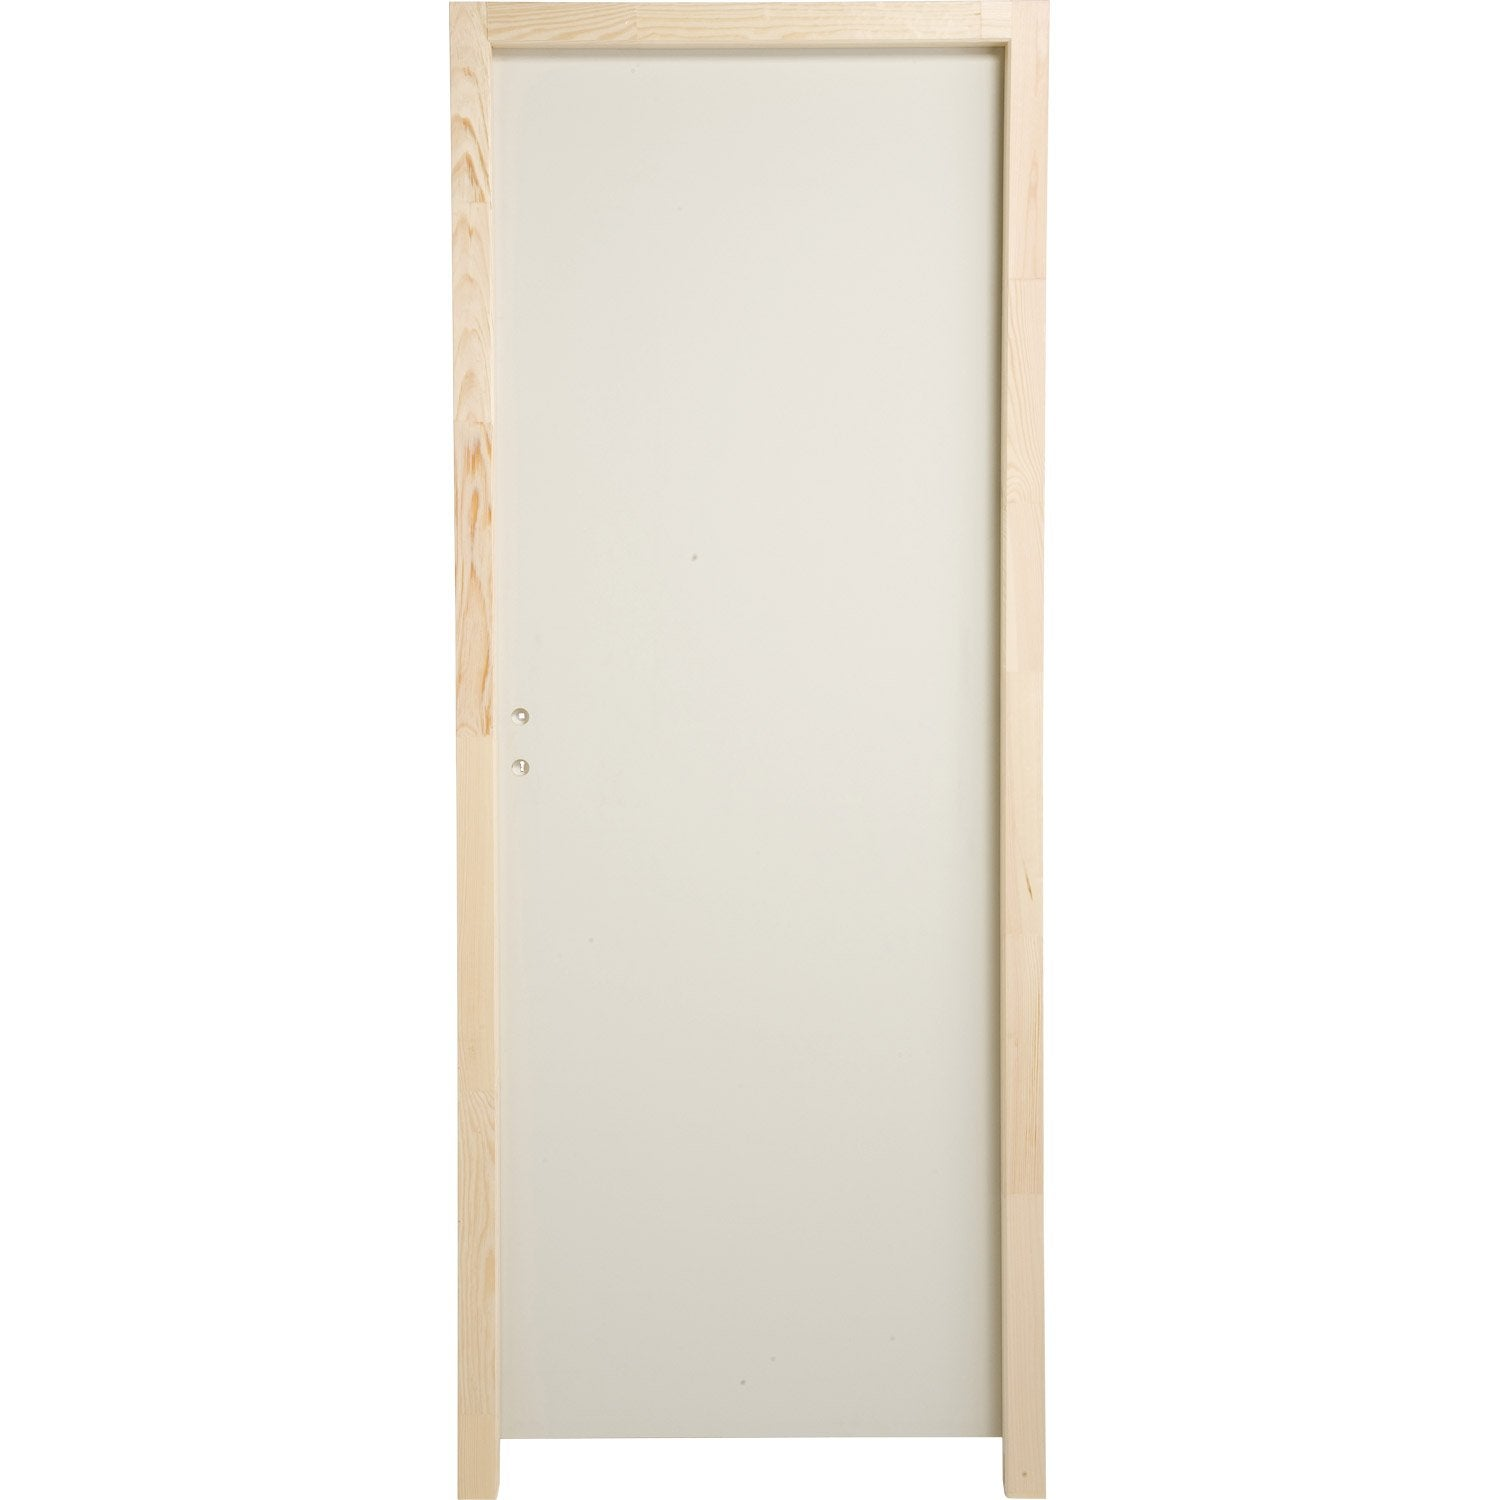 Bloc porte coulissante leroy merlin maison design for Porte extensible leroy merlin